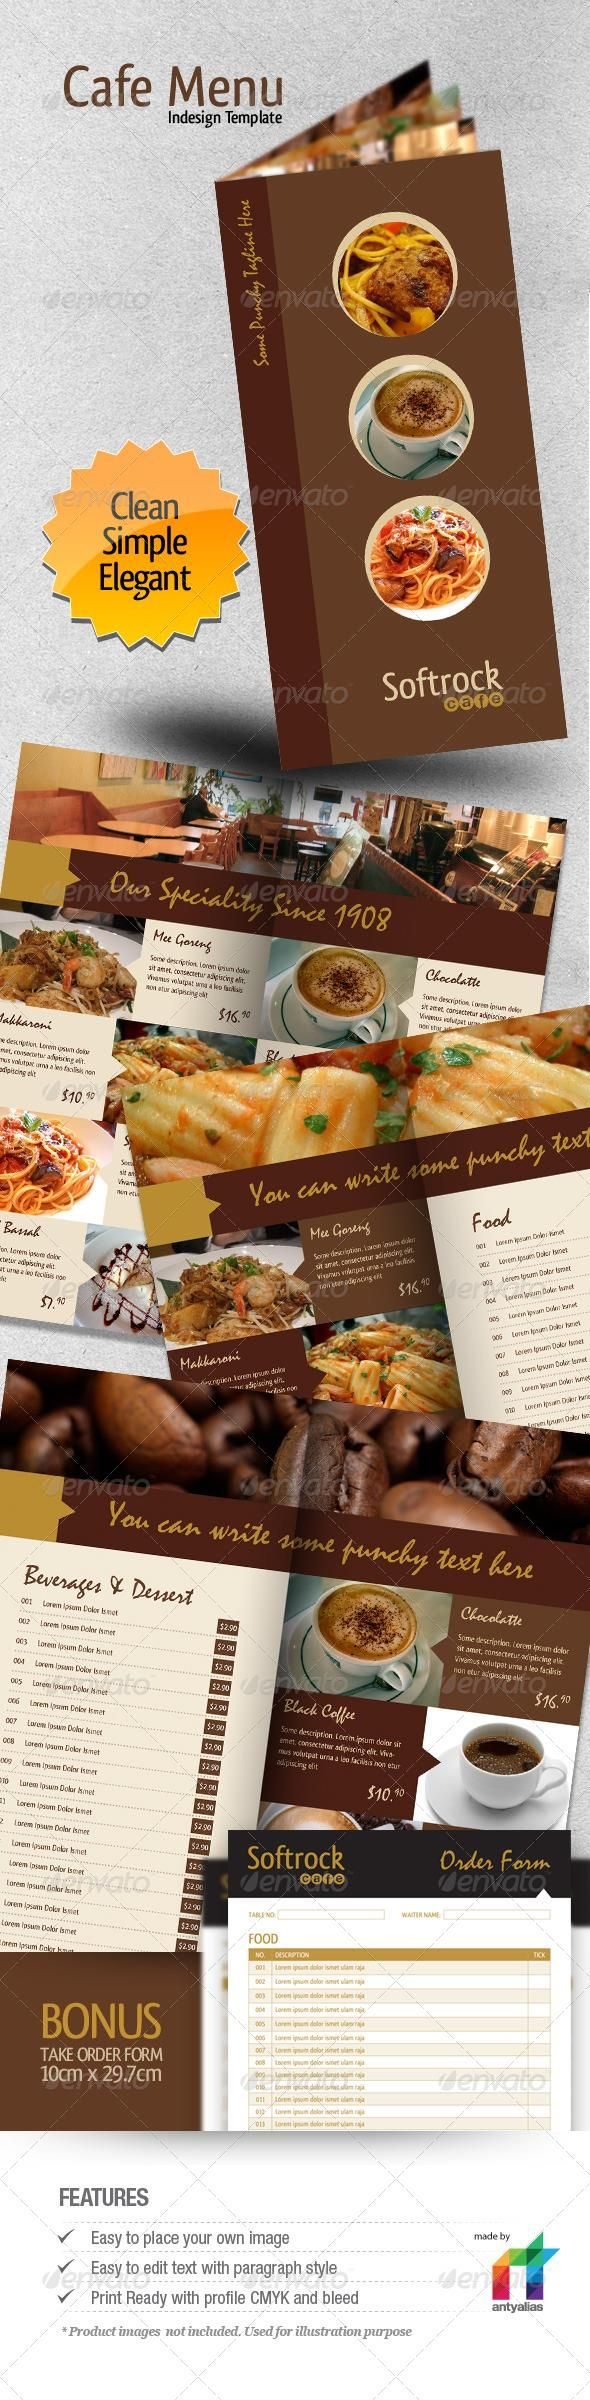 Cafe Menu Indesign Template  Free Cafe Menu Templates For Word